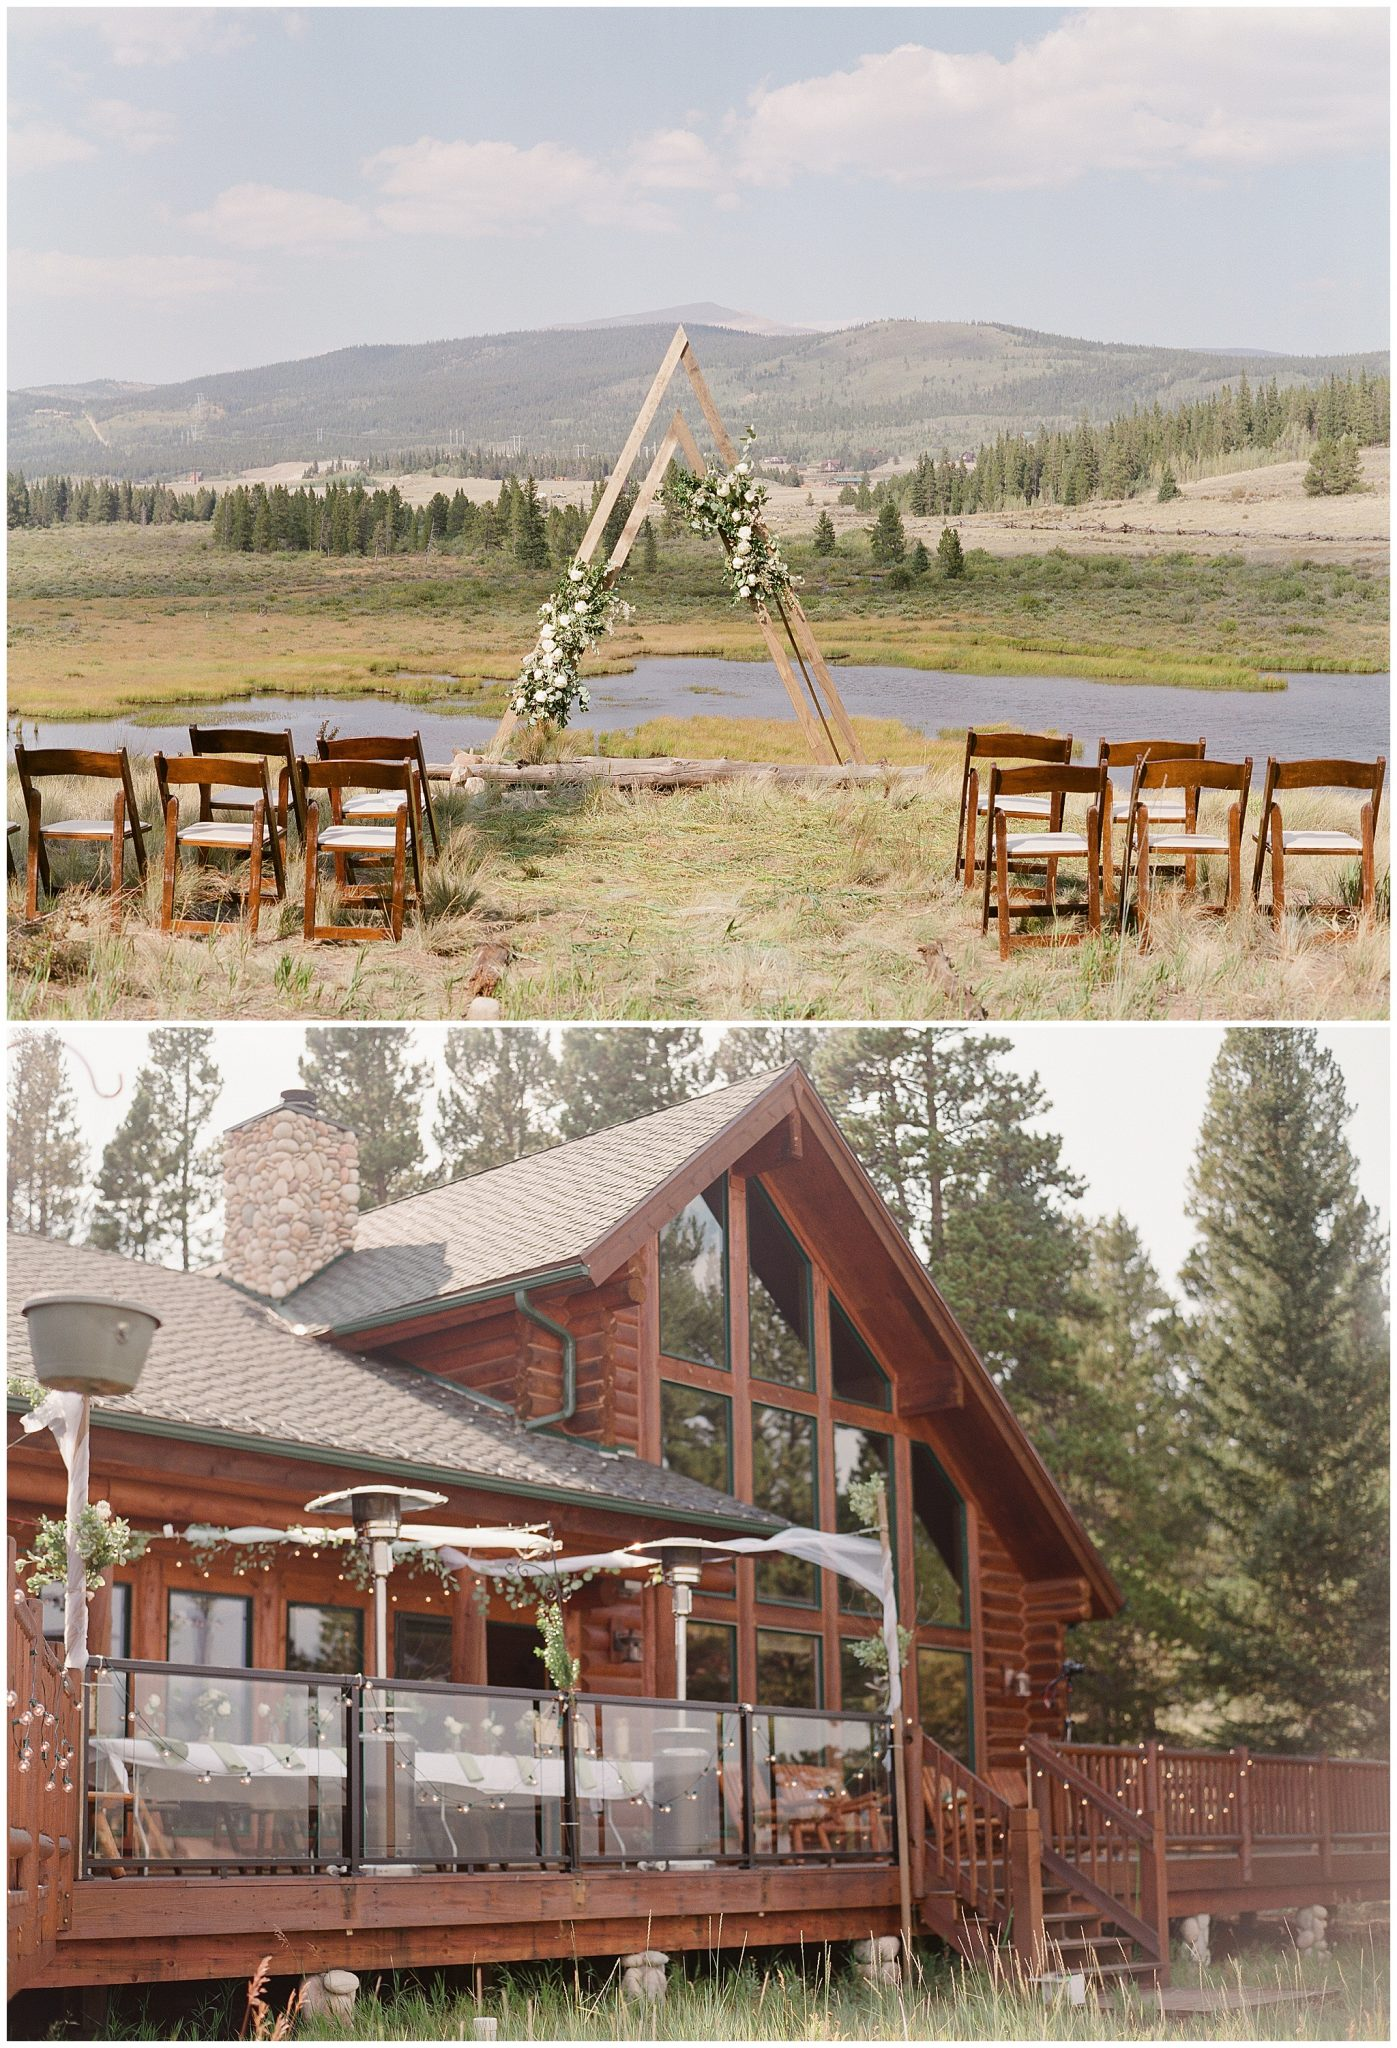 Ceremony Details at an Airbnb VRBO Home Rental Wedding